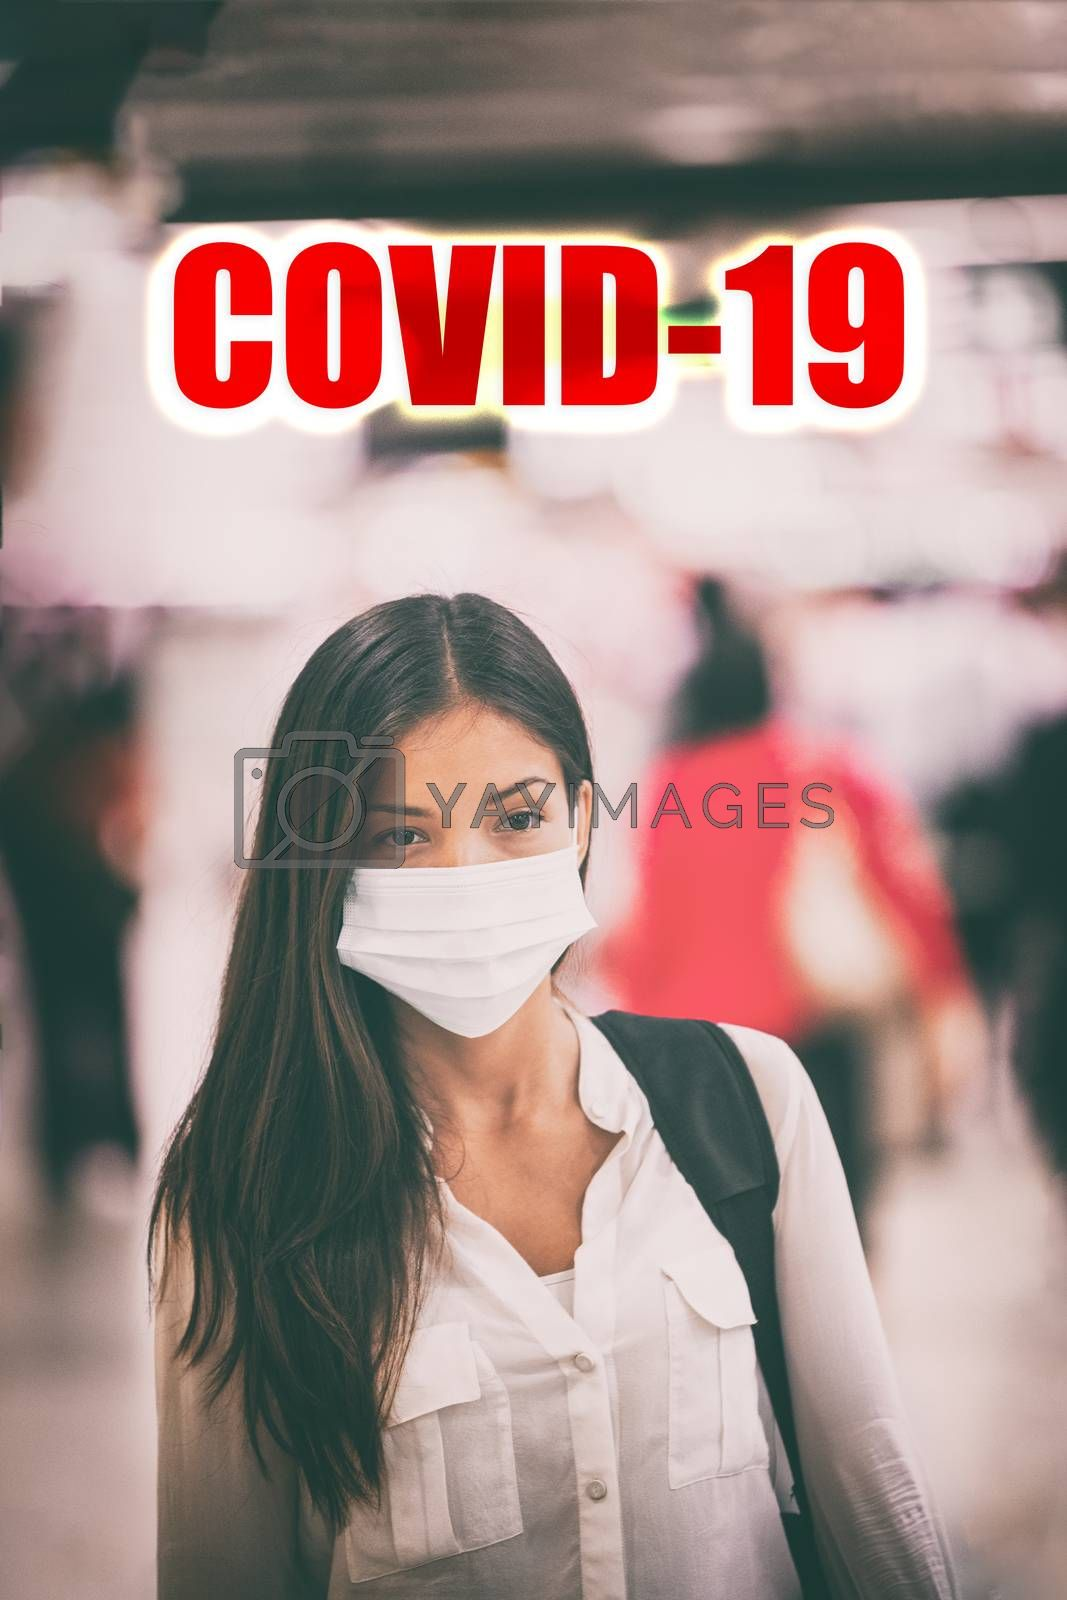 Coronavirus COVID-19 virus infection. Asian woman walking in airport crowd wearing virus surgical face mask with text title above. Vertical.